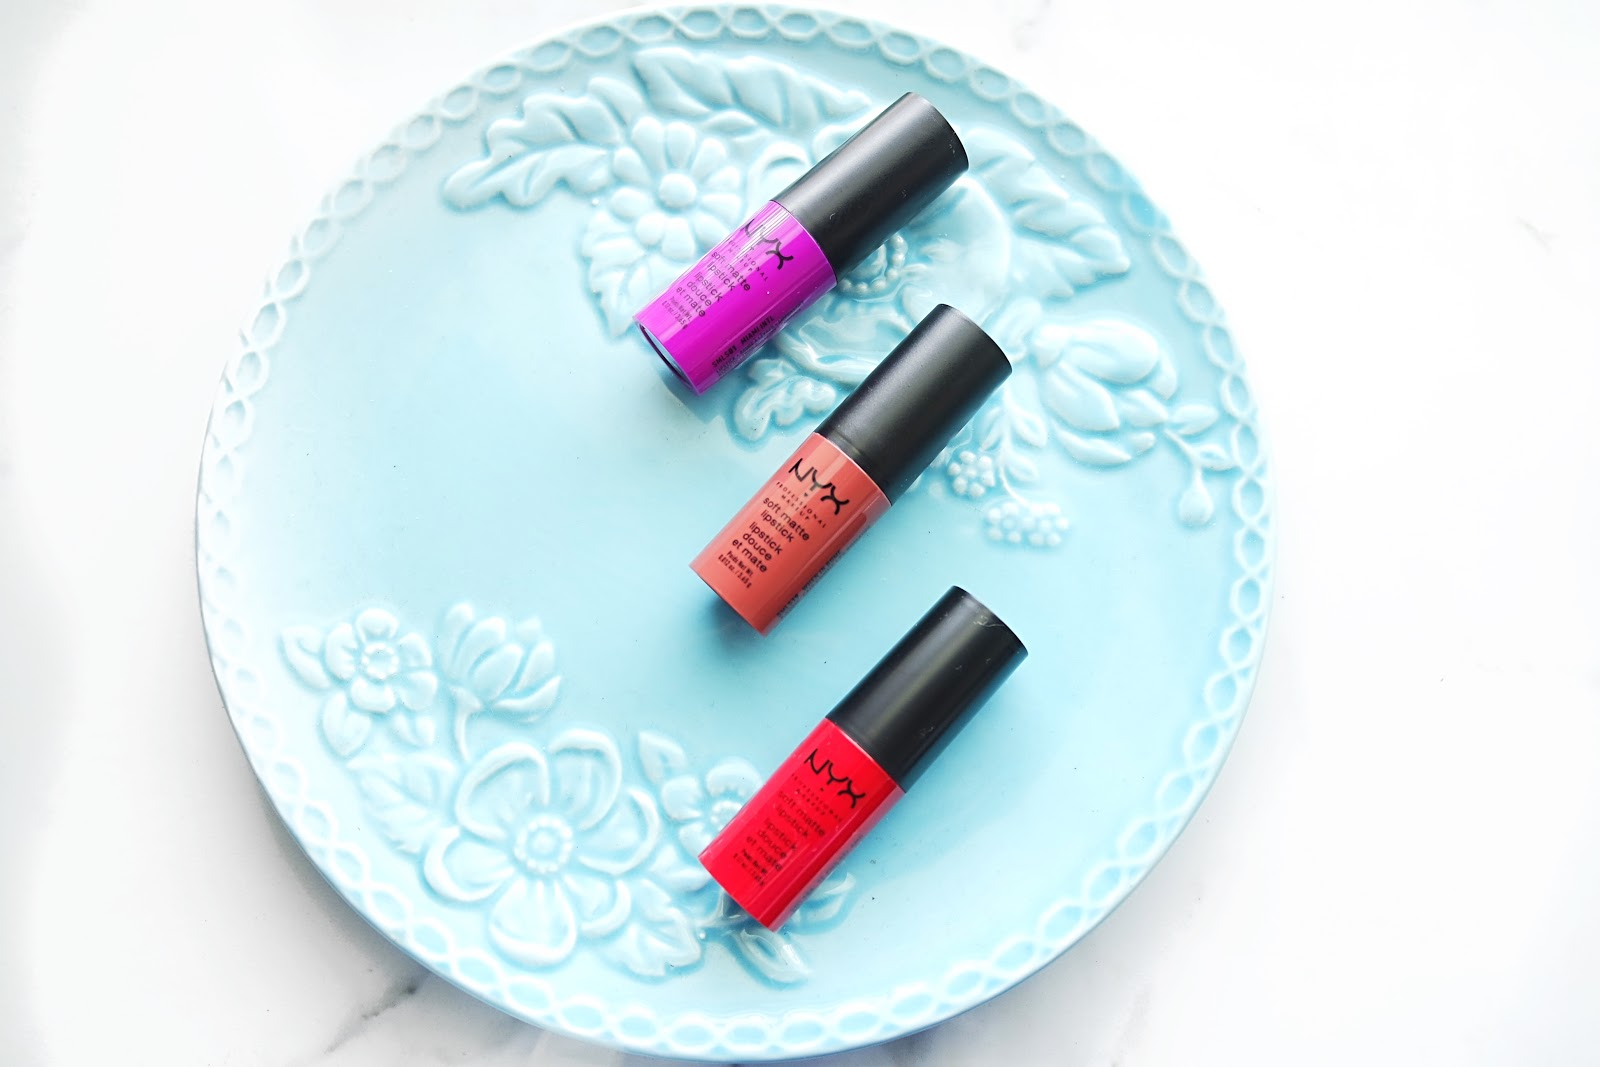 Nyx Soft Matte Lipsticks Review and Swatches